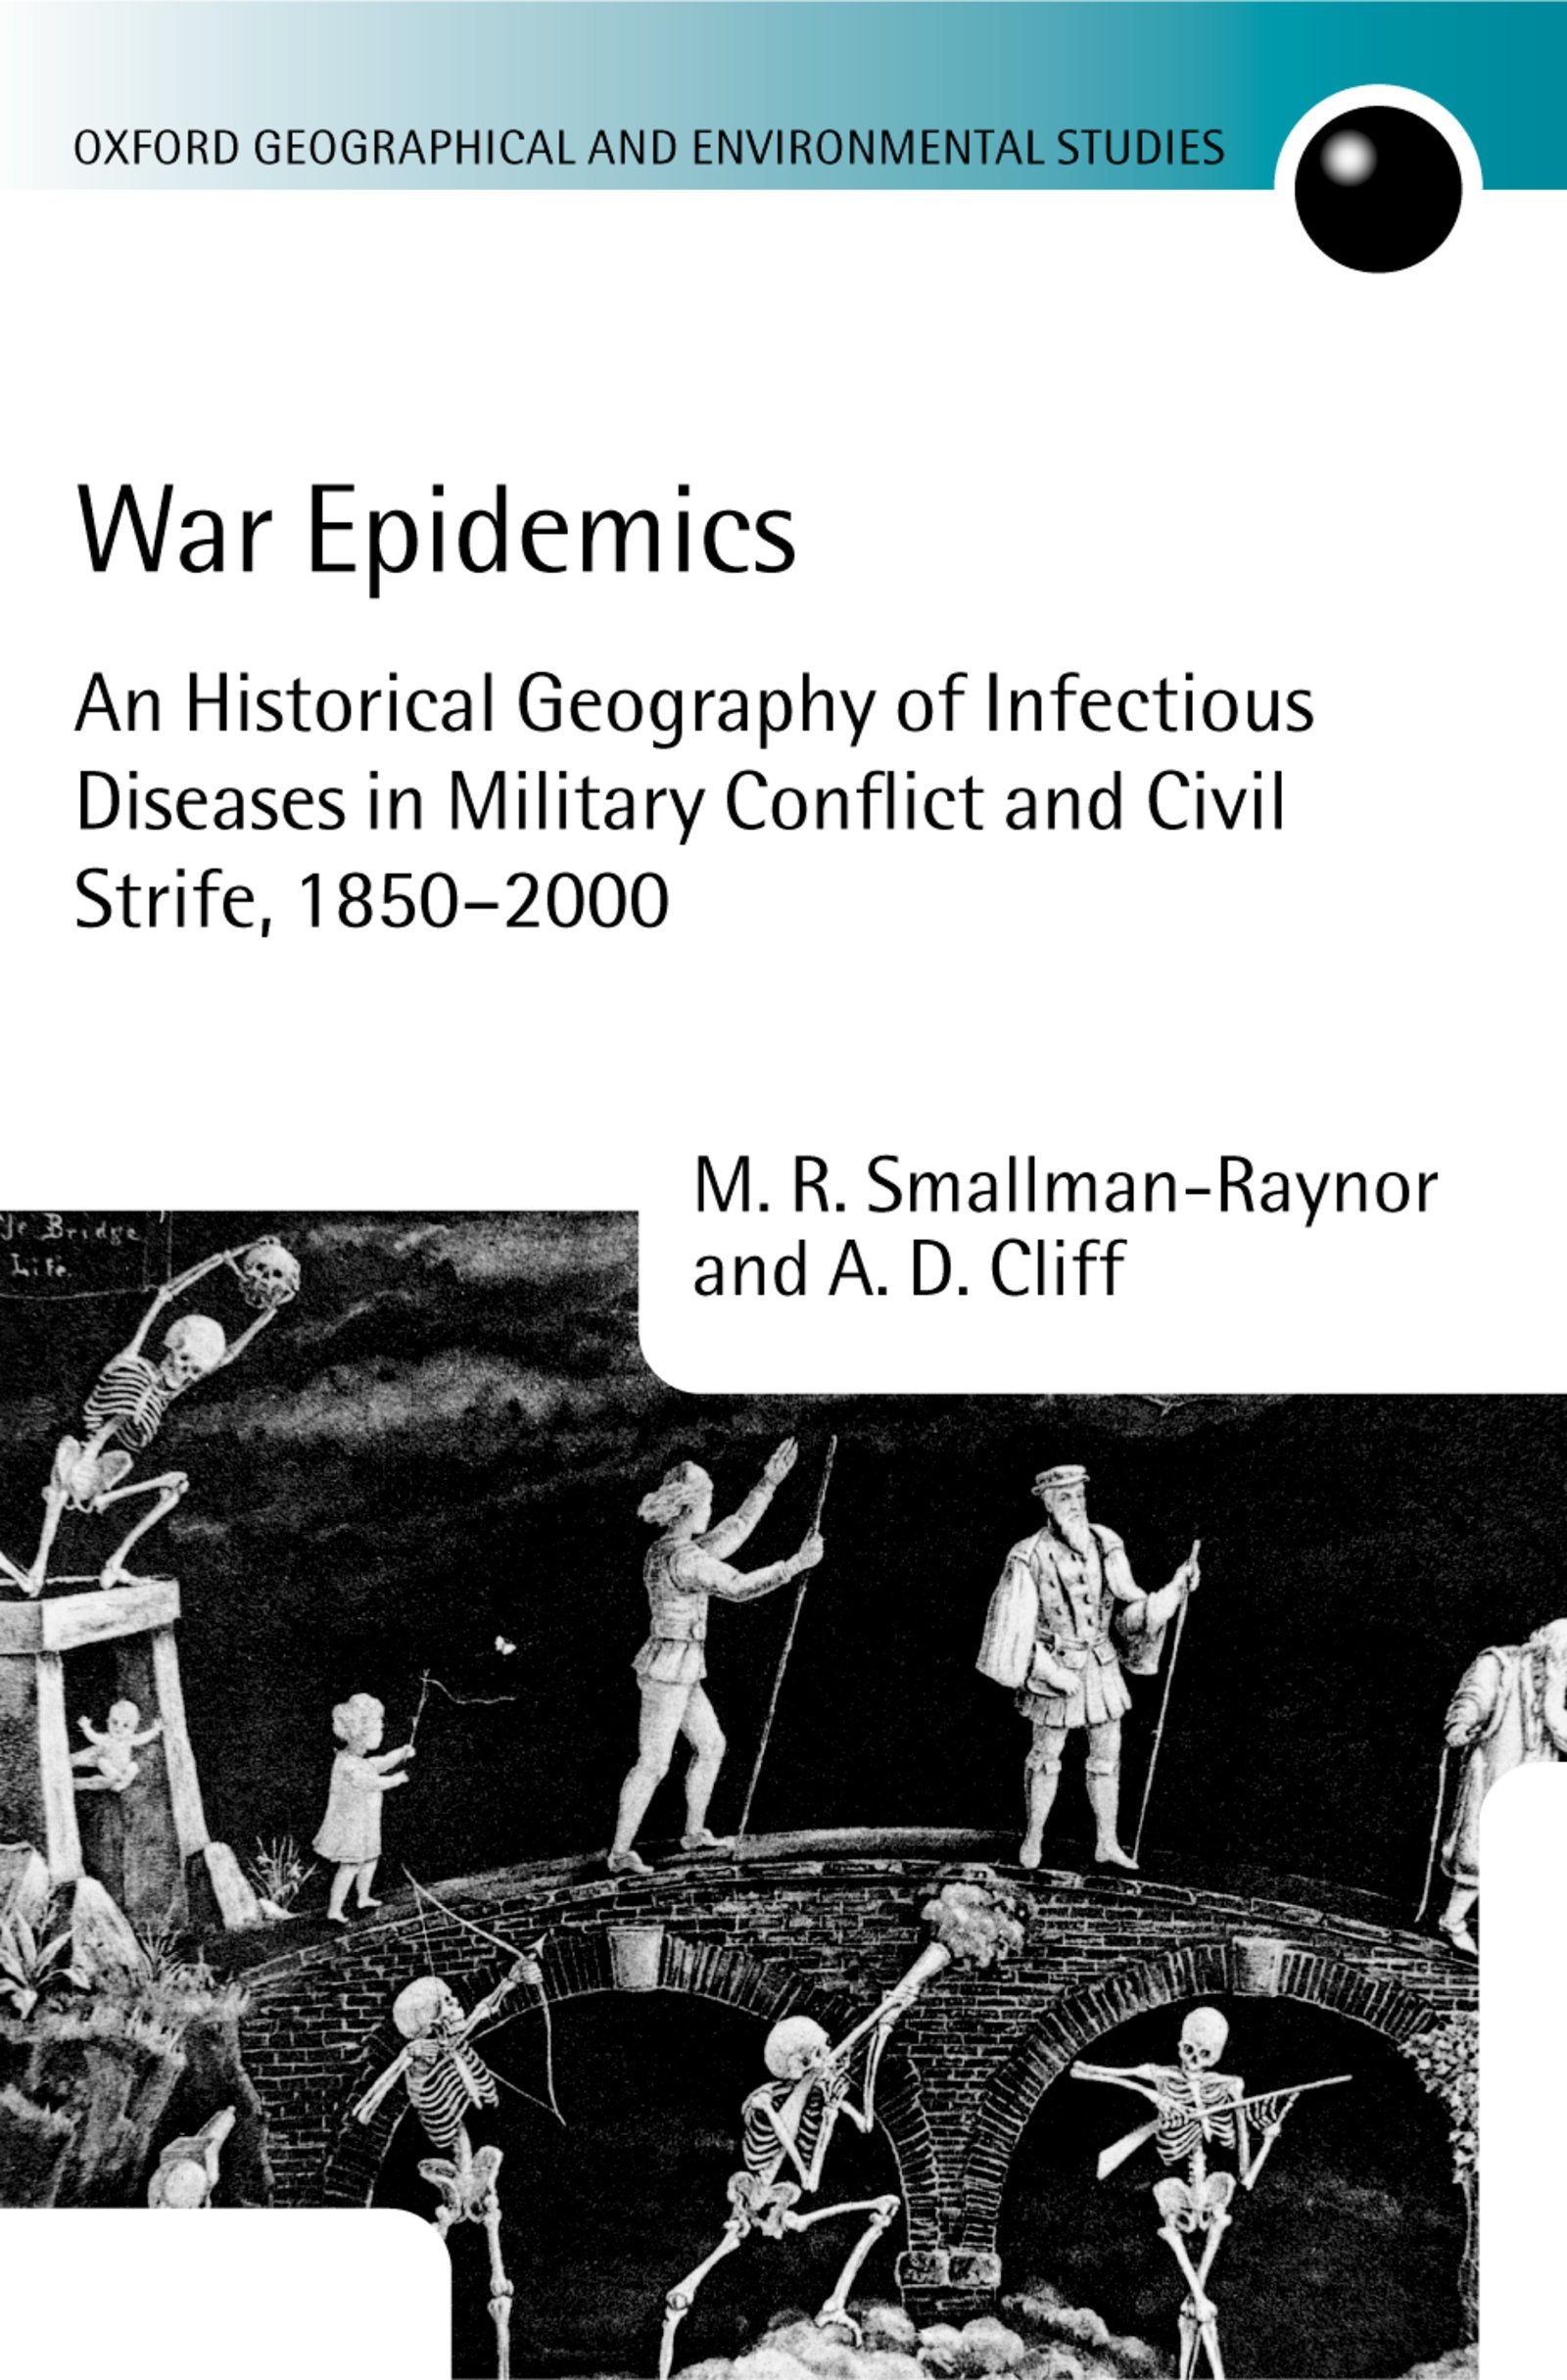 War EpidemicsAn Historical Geography of Infectious Diseases in Military Conflict and Civil Strife, 1850-2000